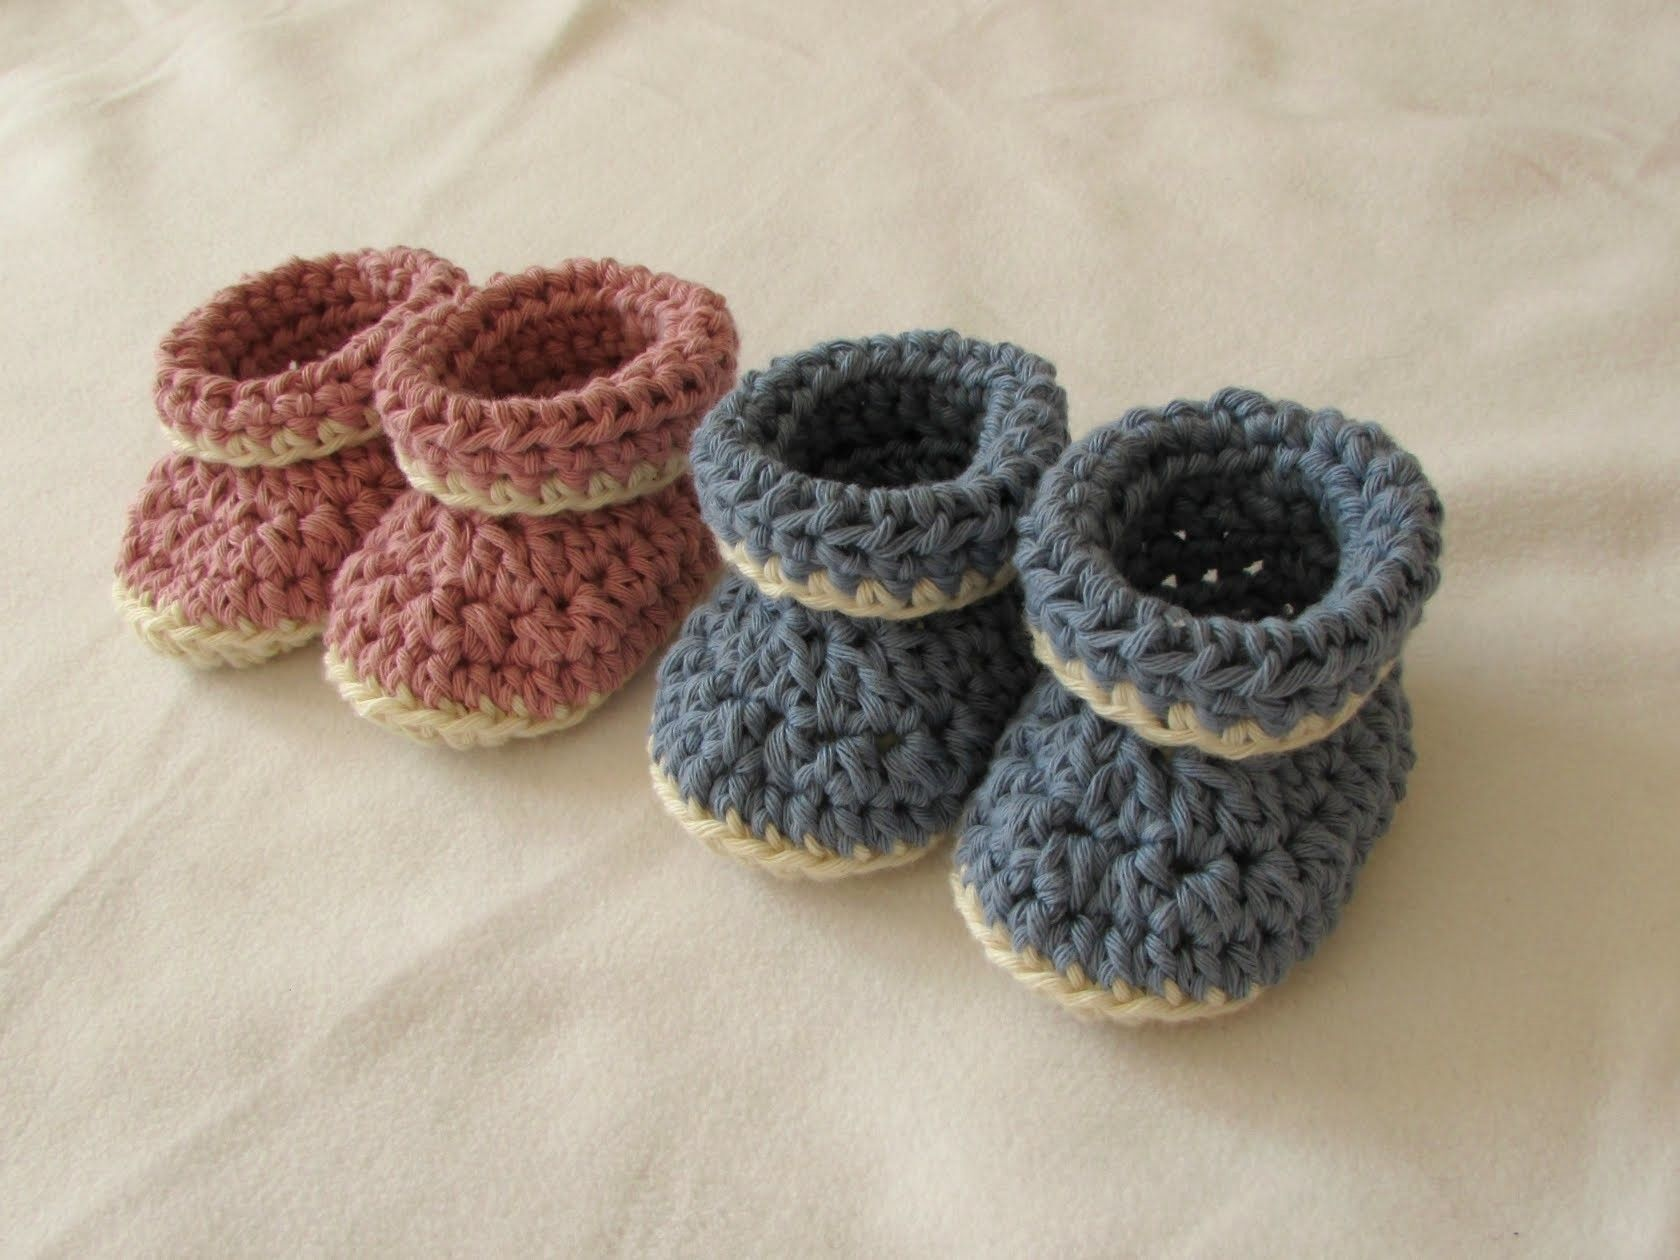 85fb5f35c1e9 VERY EASY crochet cuffed baby booties tutorial - roll top baby shoes for  beginners